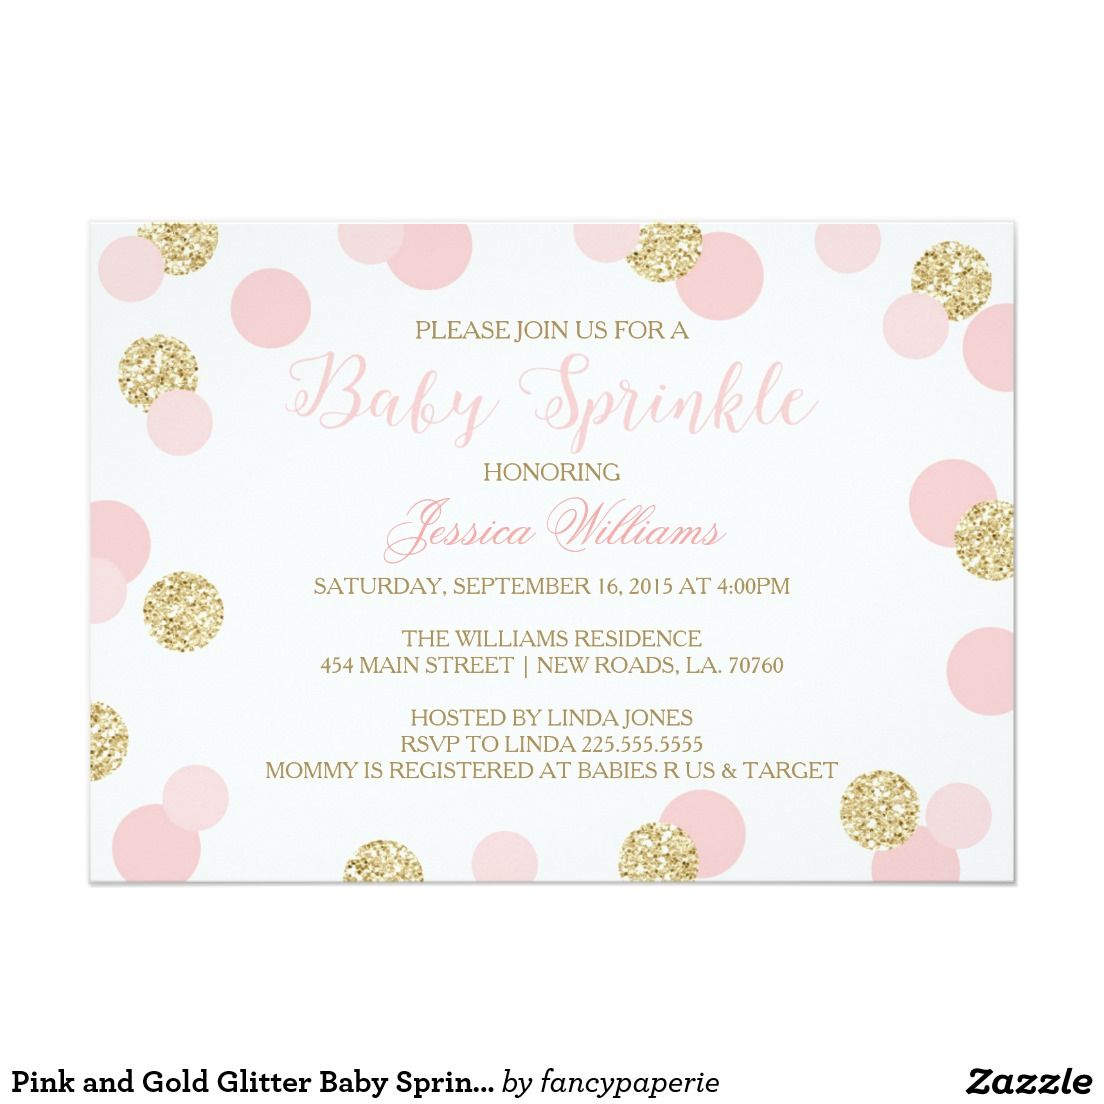 Pink and Gold Glitter Baby Sprinkle Invitations   Baby sprinkle ...